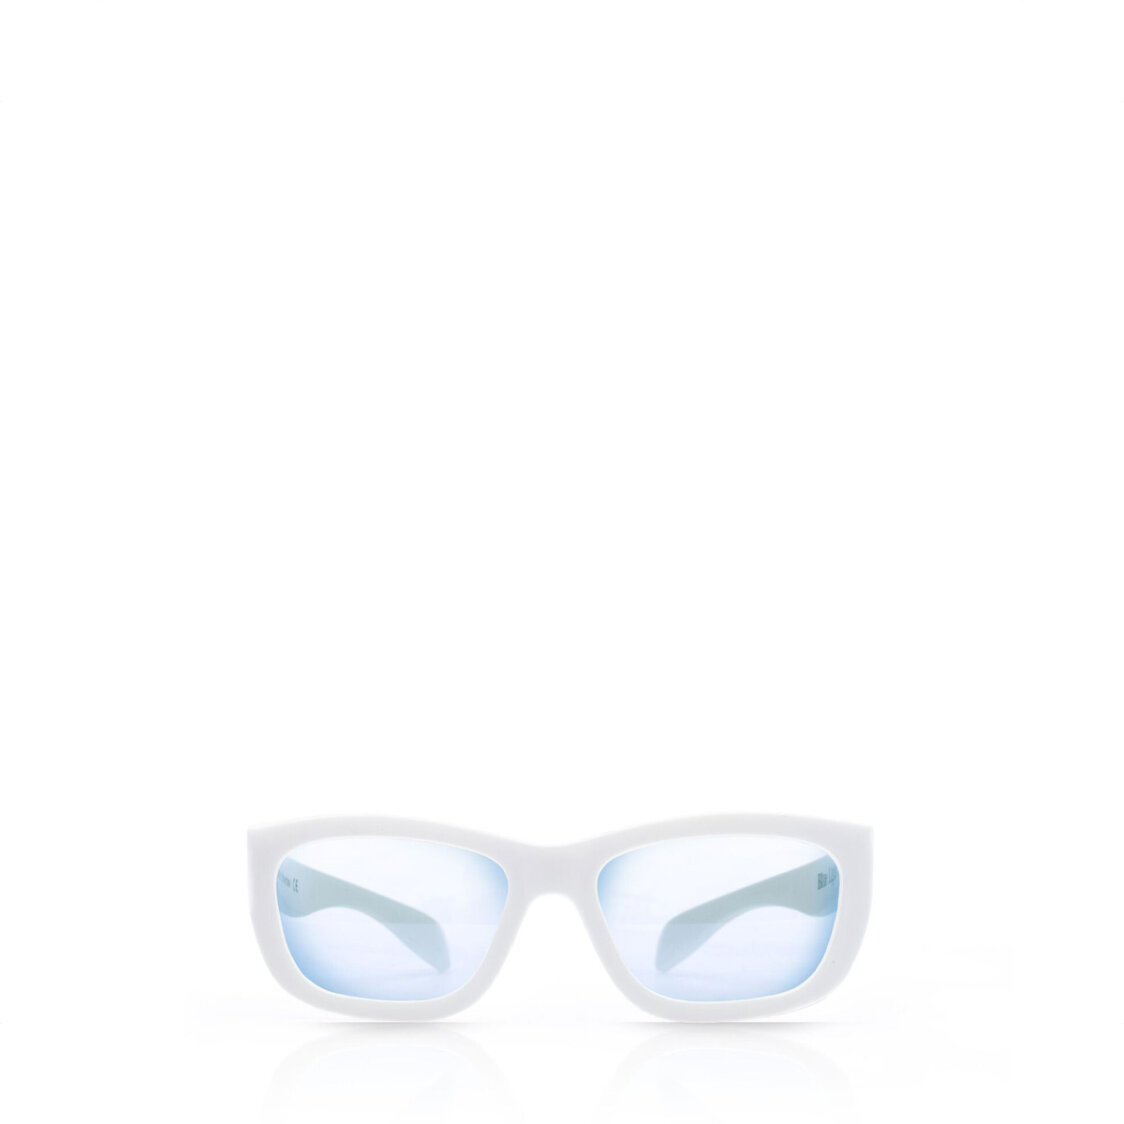 Shadez Eyewear Blue Light White Teeny aged 7- 16 years old